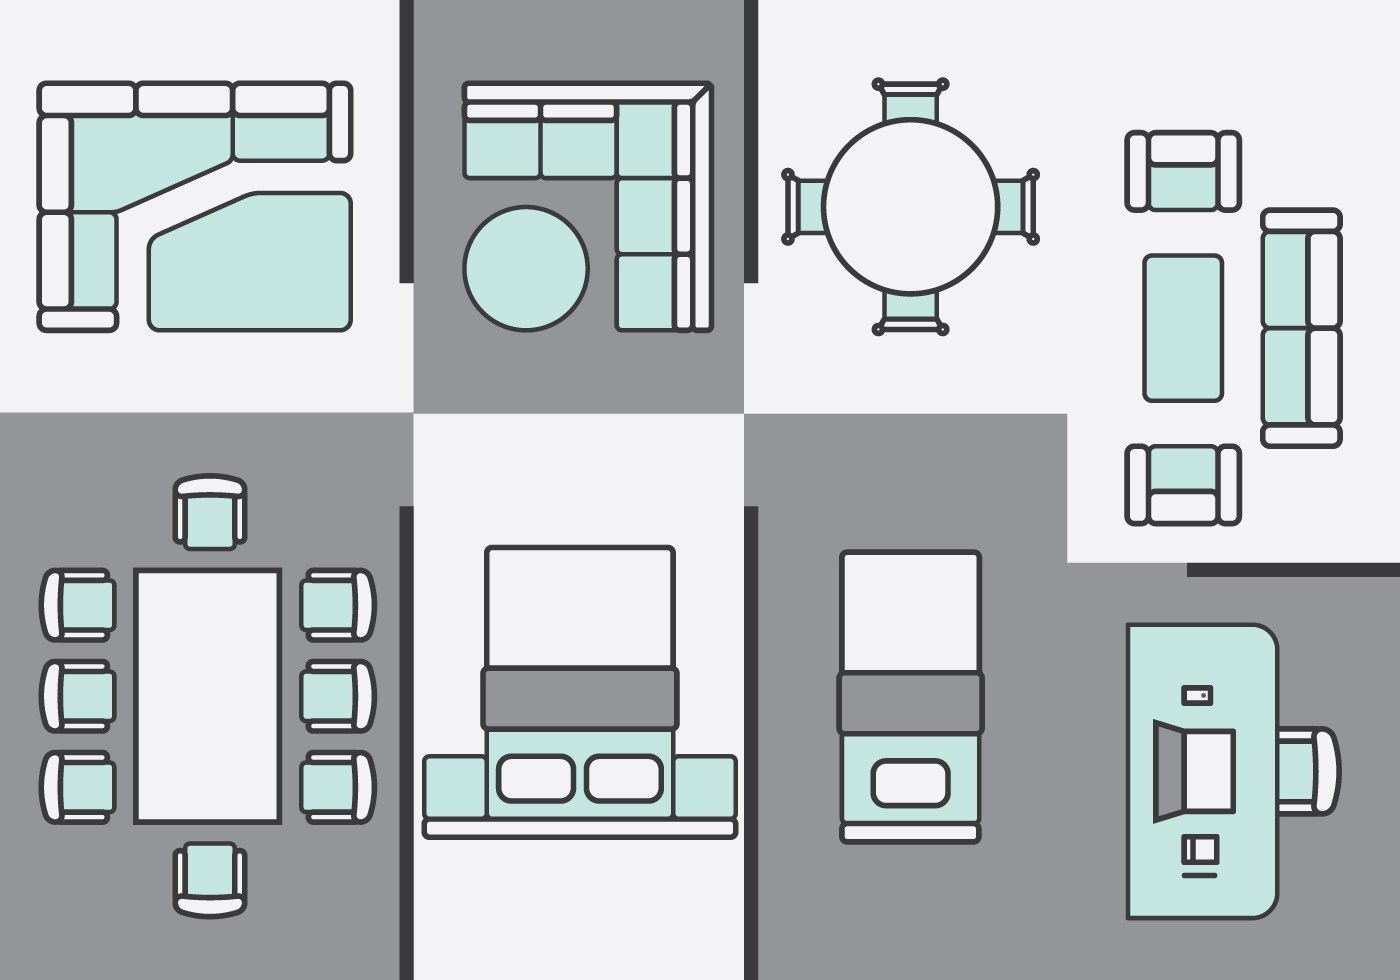 kitchen chair design plans wicker side architecture furniture icons download free vector